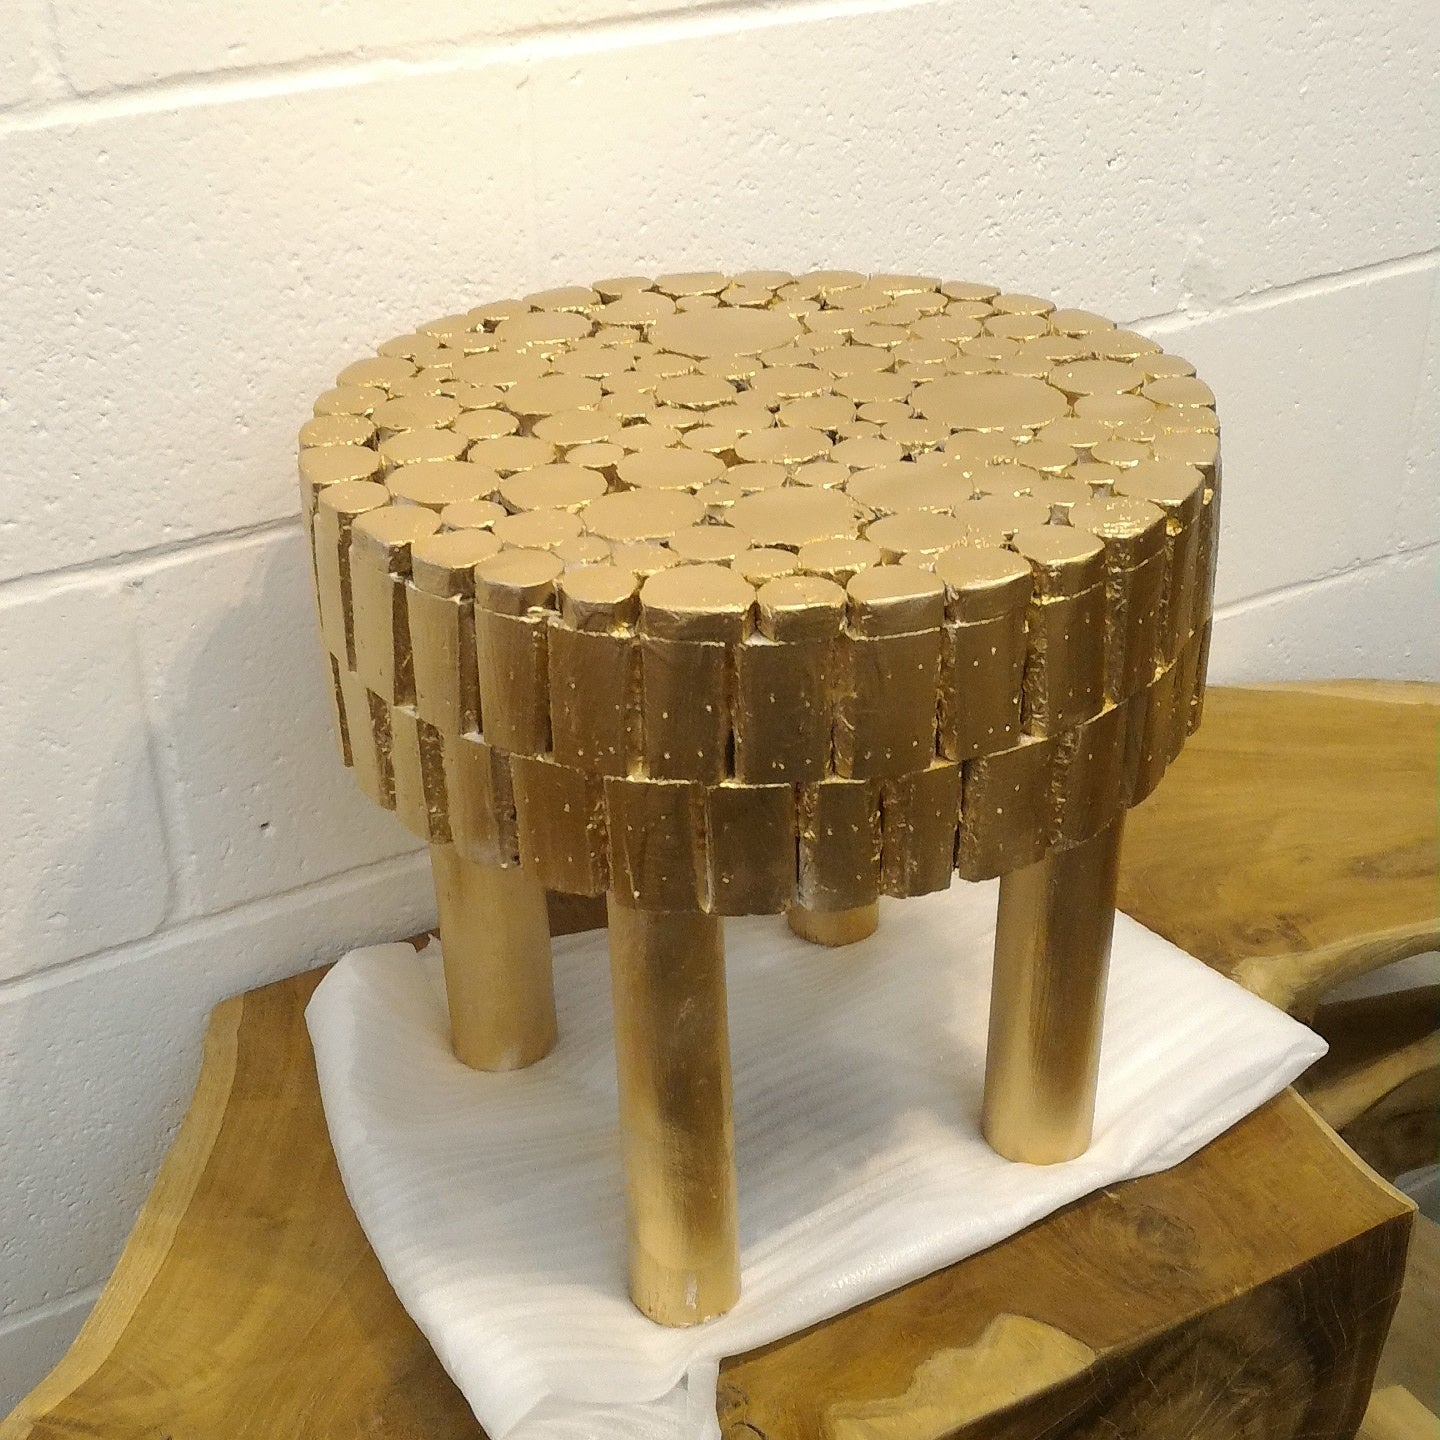 Gold Leaf Handcrafted Fir Wooden Stool Accent Table